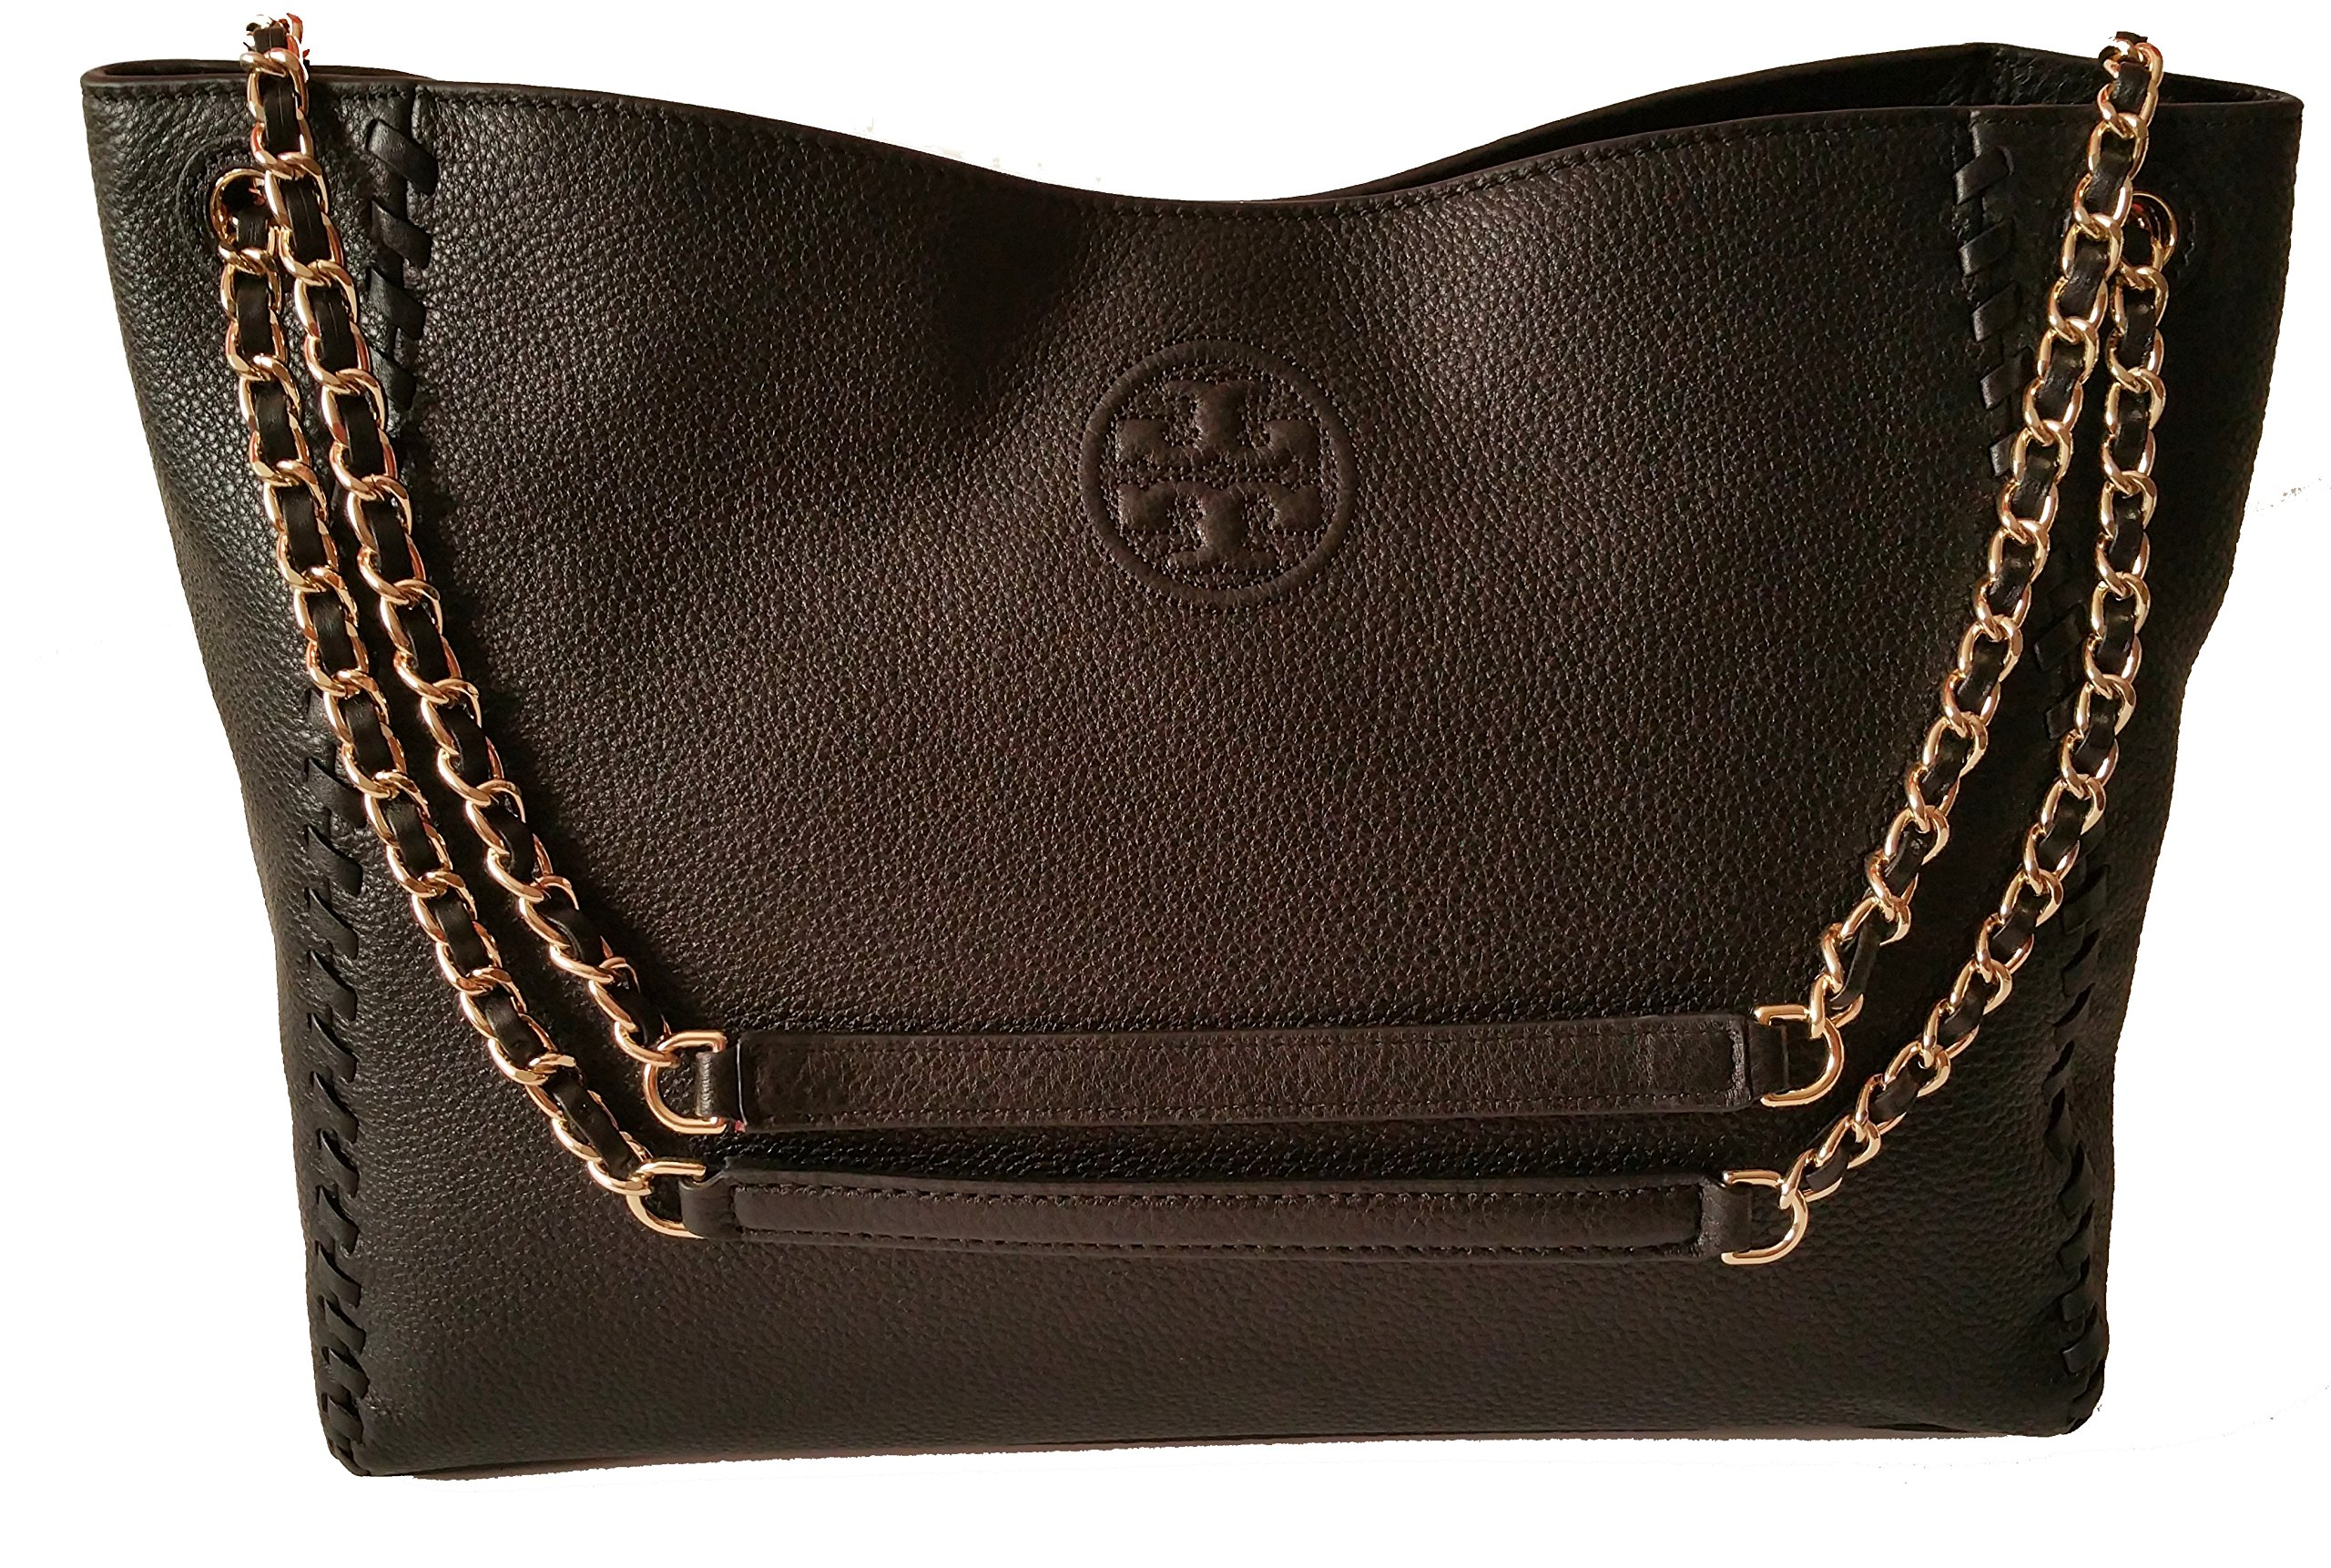 Tory Burch Marion Slouchy Shoulder Tote Black Leather Bag